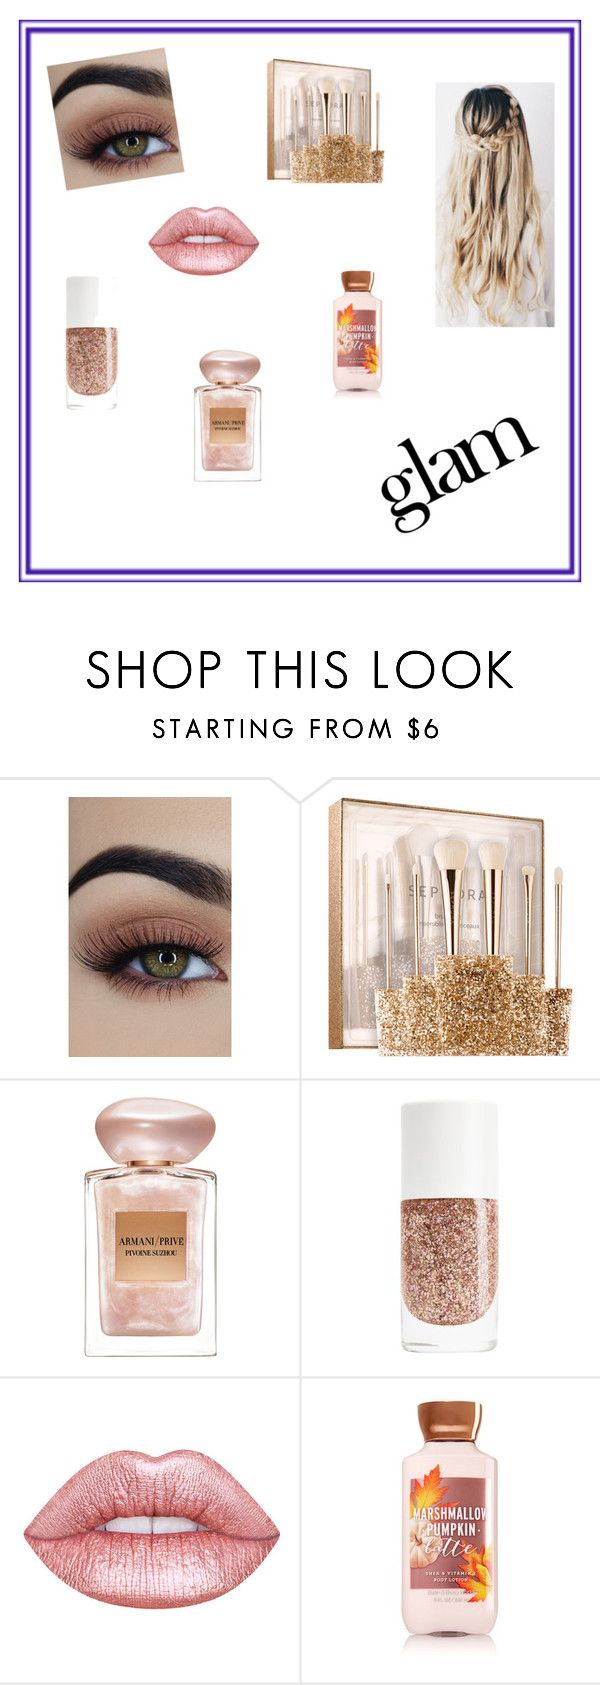 """""""Glam MakeUp"""" by chloestar1612 ❤ liked on Polyvore featuring beauty, Sephora Collection, Giorgio Armani and Naeem Khan"""